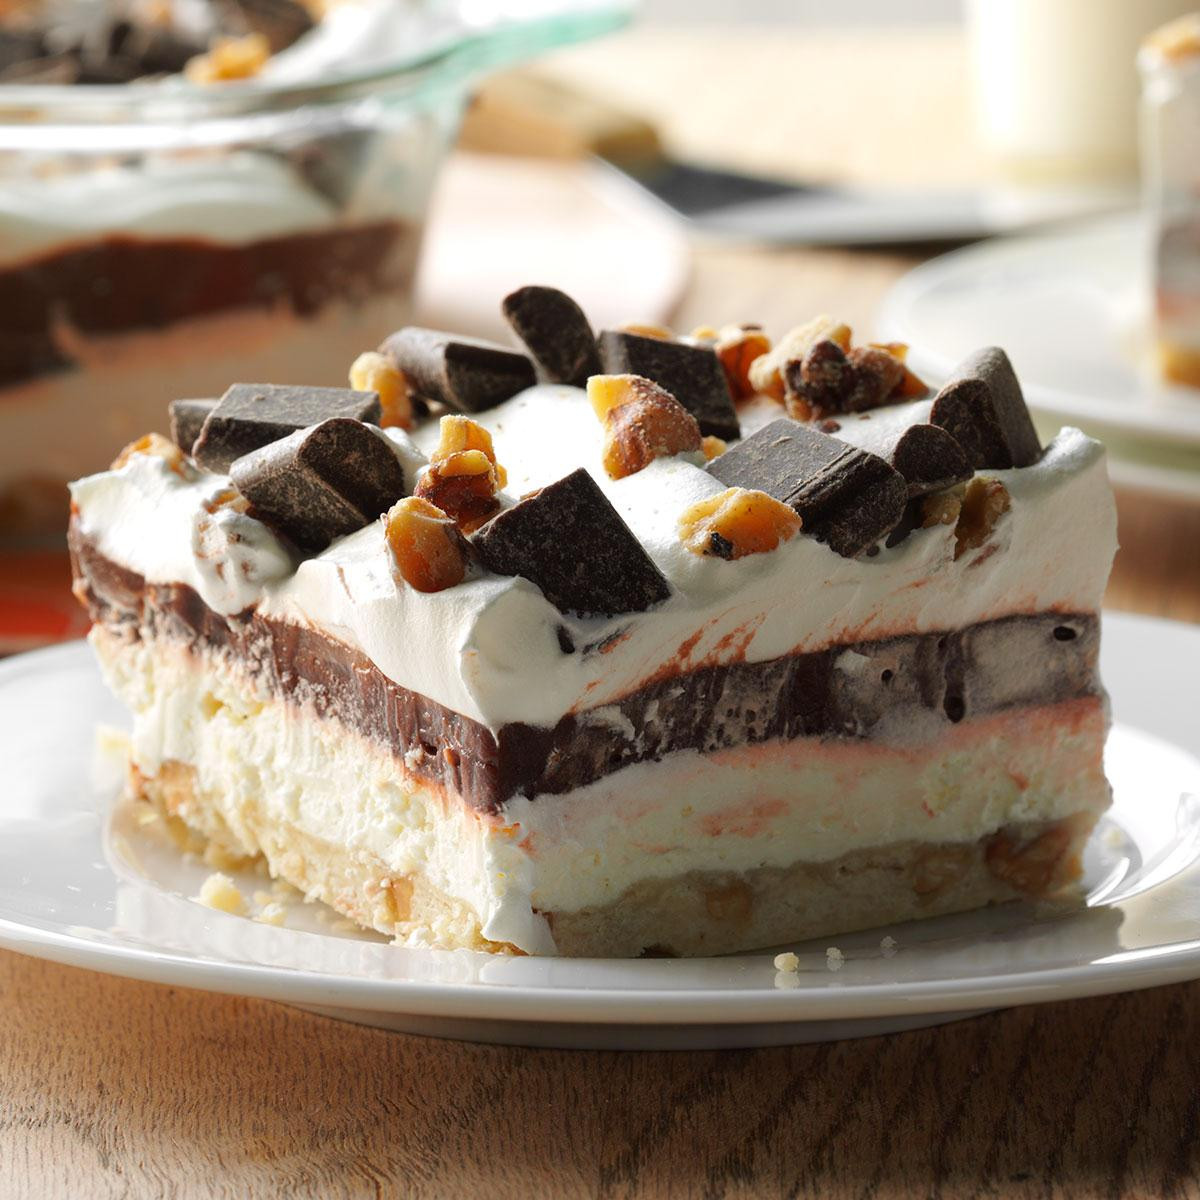 Easy Dessert Recipes With Pictures  Easy Four Layer Chocolate Dessert Recipe